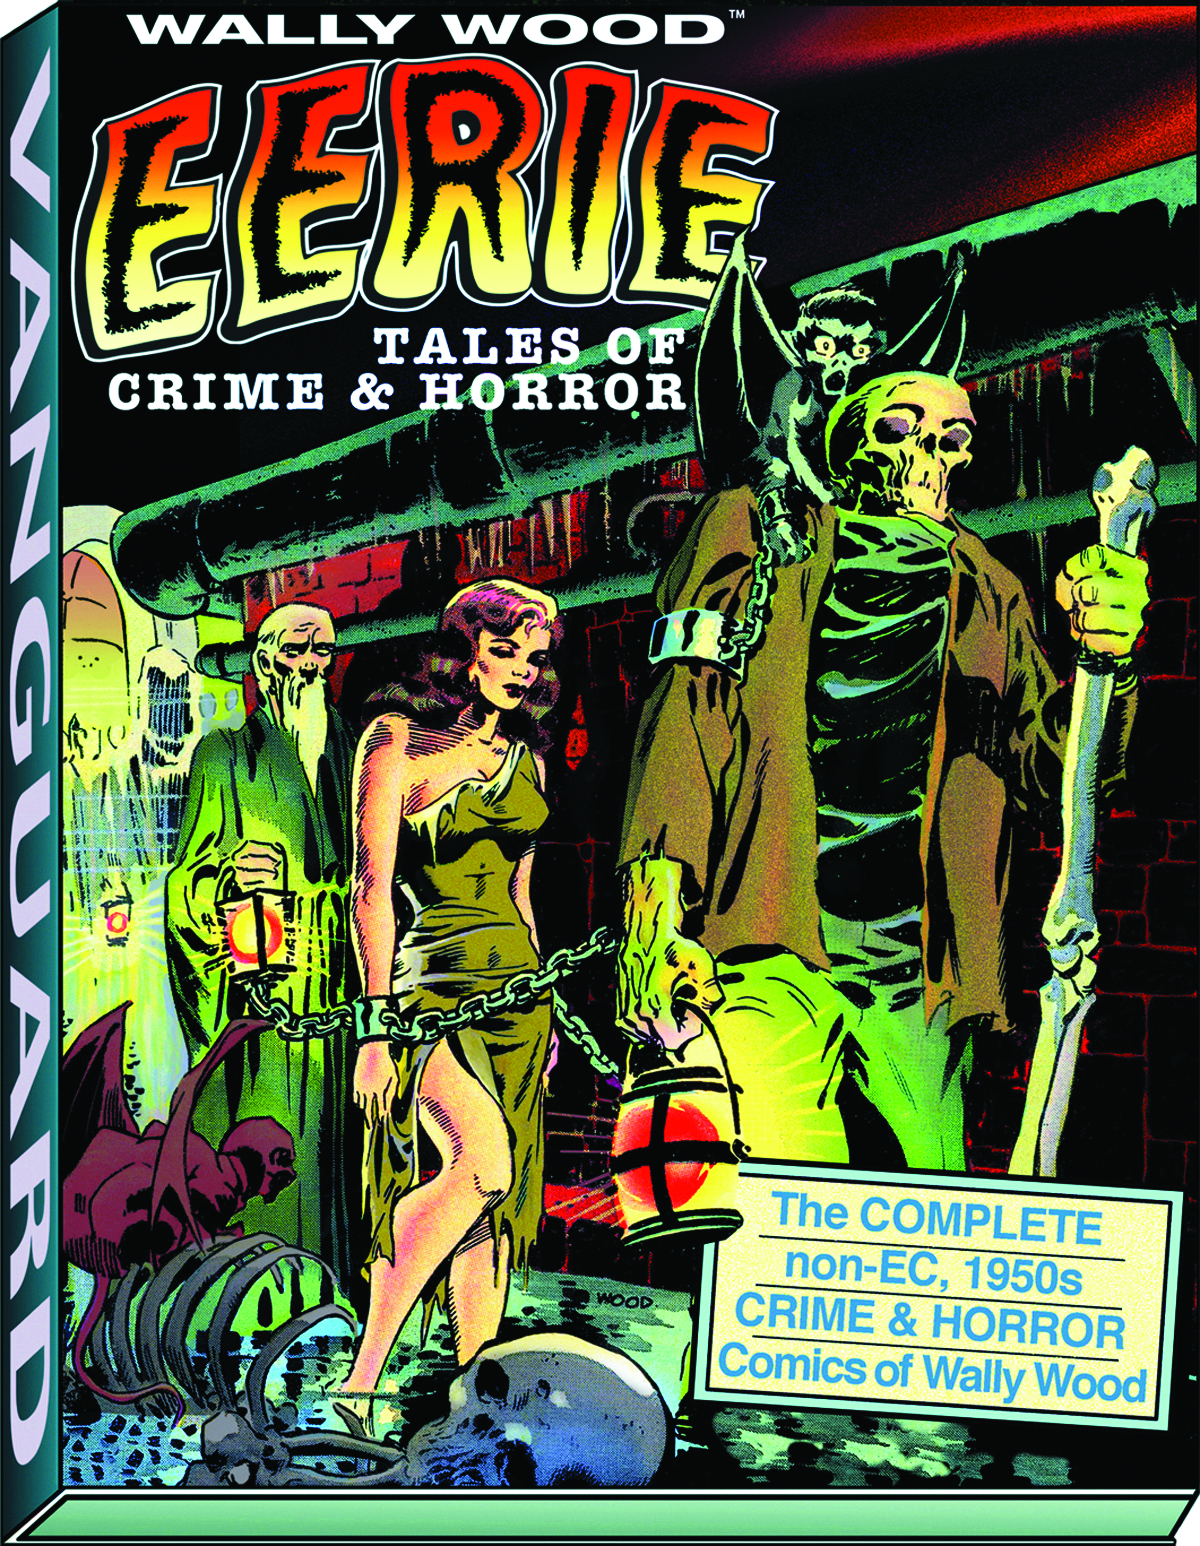 WALLY WOOD EERIE TALES OF CRIME & HORROR SC